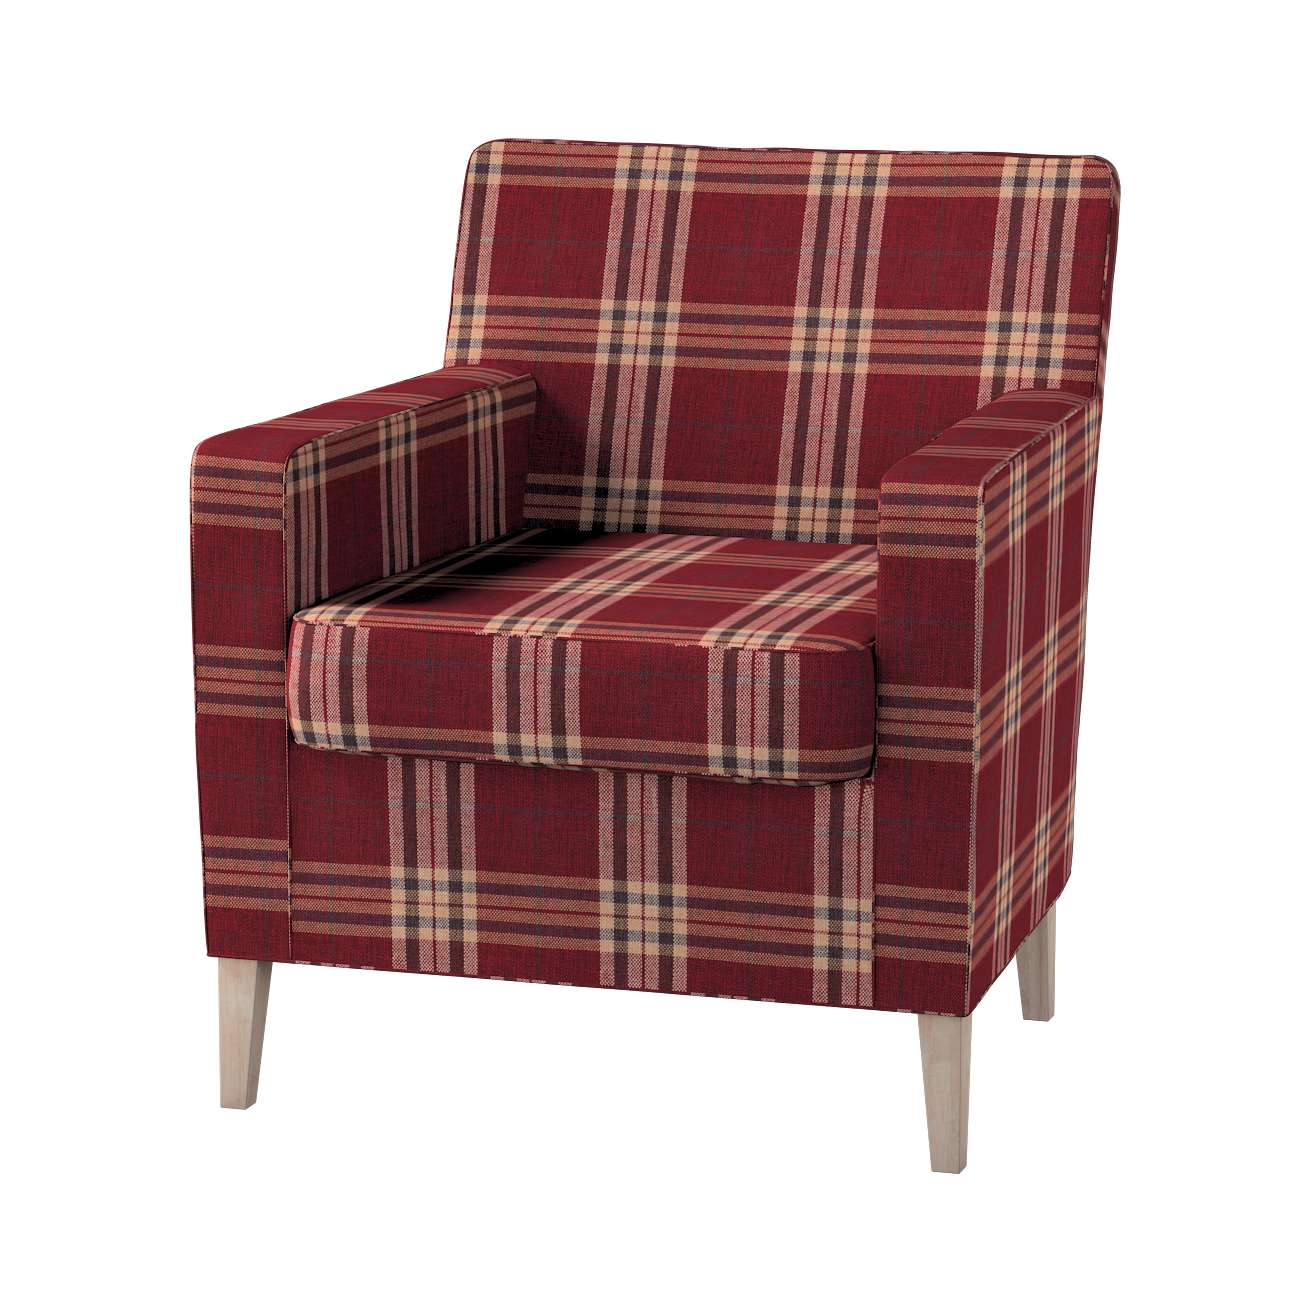 Karlstad tall chair cover Karlstad armchair cover in collection Edinburgh, fabric: 115-73